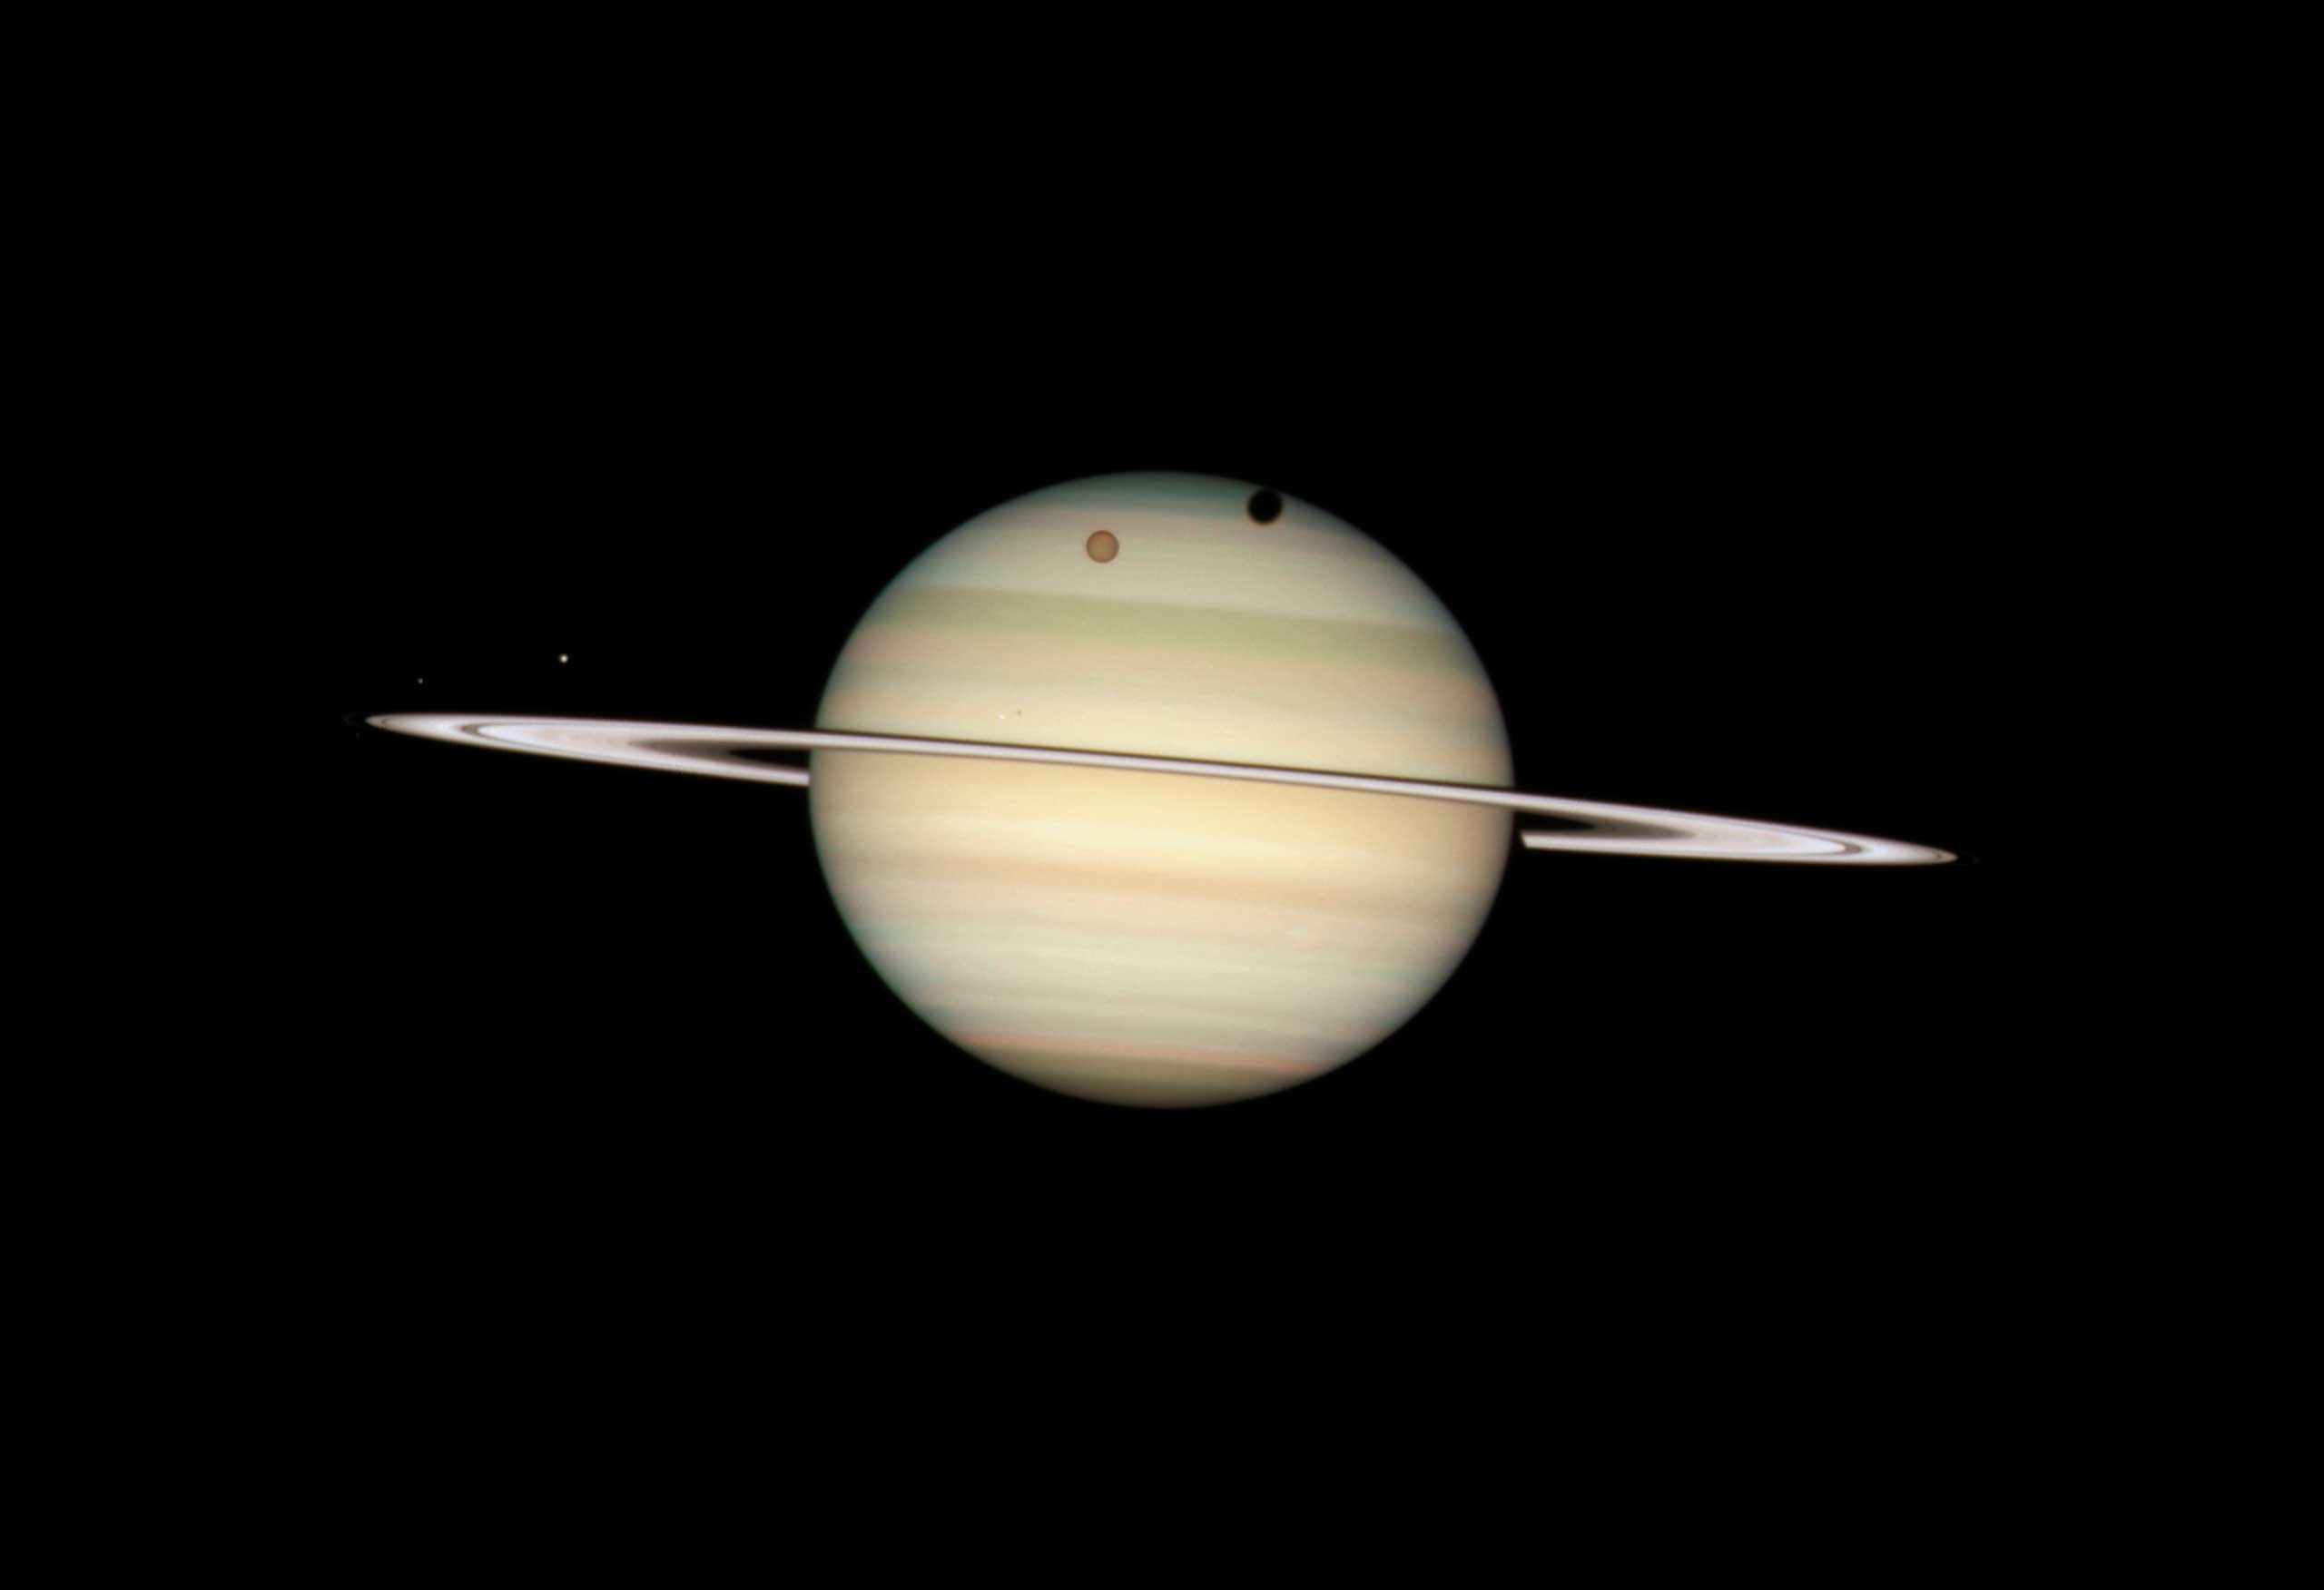 <strong>Saturn</strong>:                                                                      In this photo, Hubble captured the four moons of Saturn passing in front of their parent planet. The giant orange moon Titan casts a large shadow onto Saturn's north polar hood. Below Titan, near the ring plane and to the left is the moon Mimas, casting a much smaller shadow onto Saturn's equatorial cloud tops. Farther to the left, and off Saturn's disk, are the bright moon Dione and the fainter moon Enceladus.                                                                      <i>Image released on March 17, 2009</i>